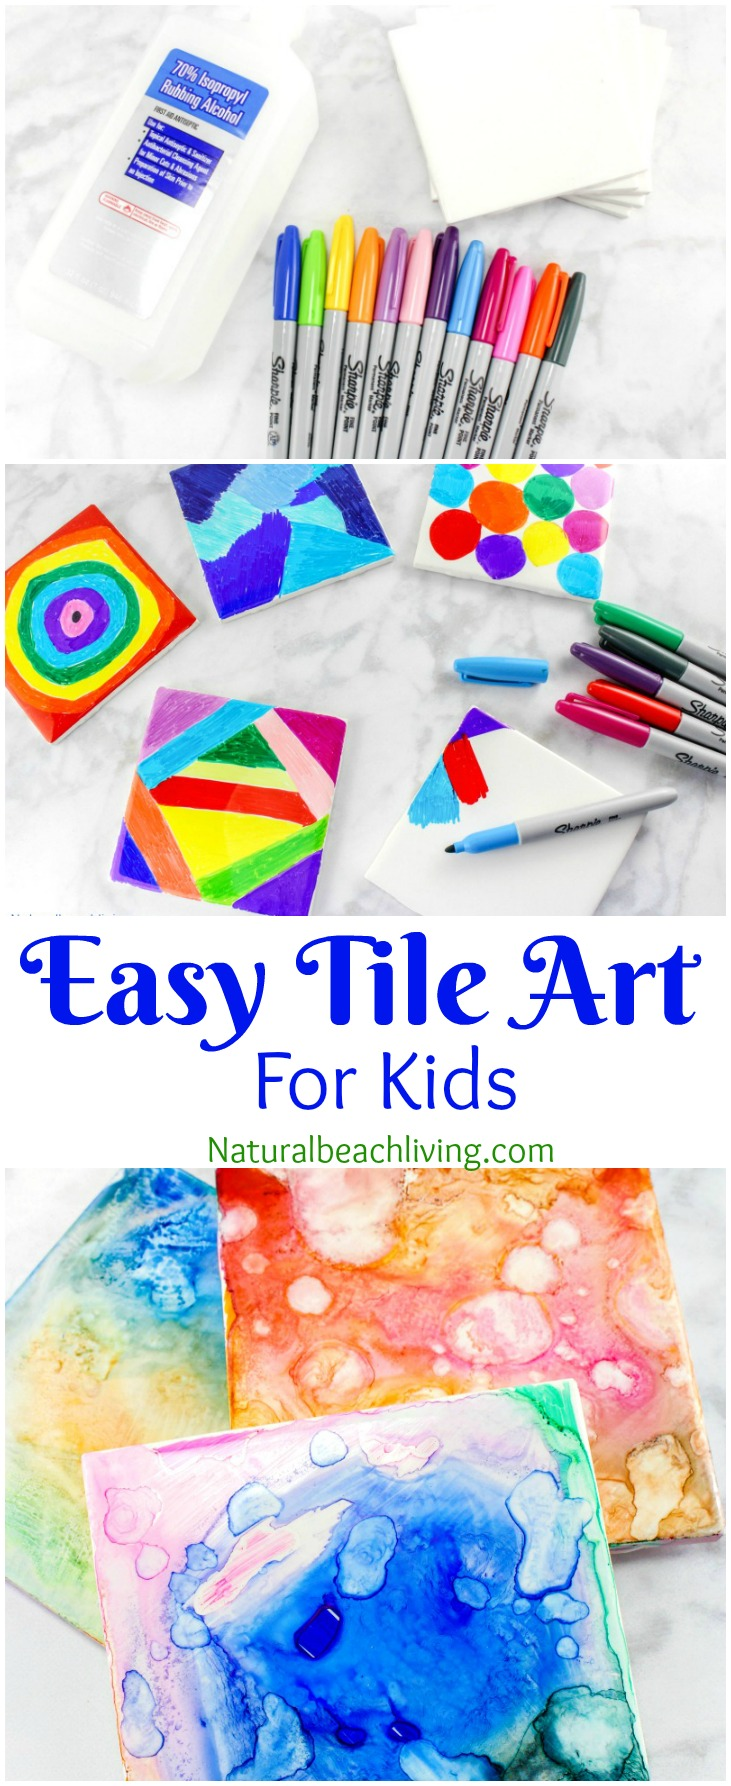 Tile Art for Kids, Tile art